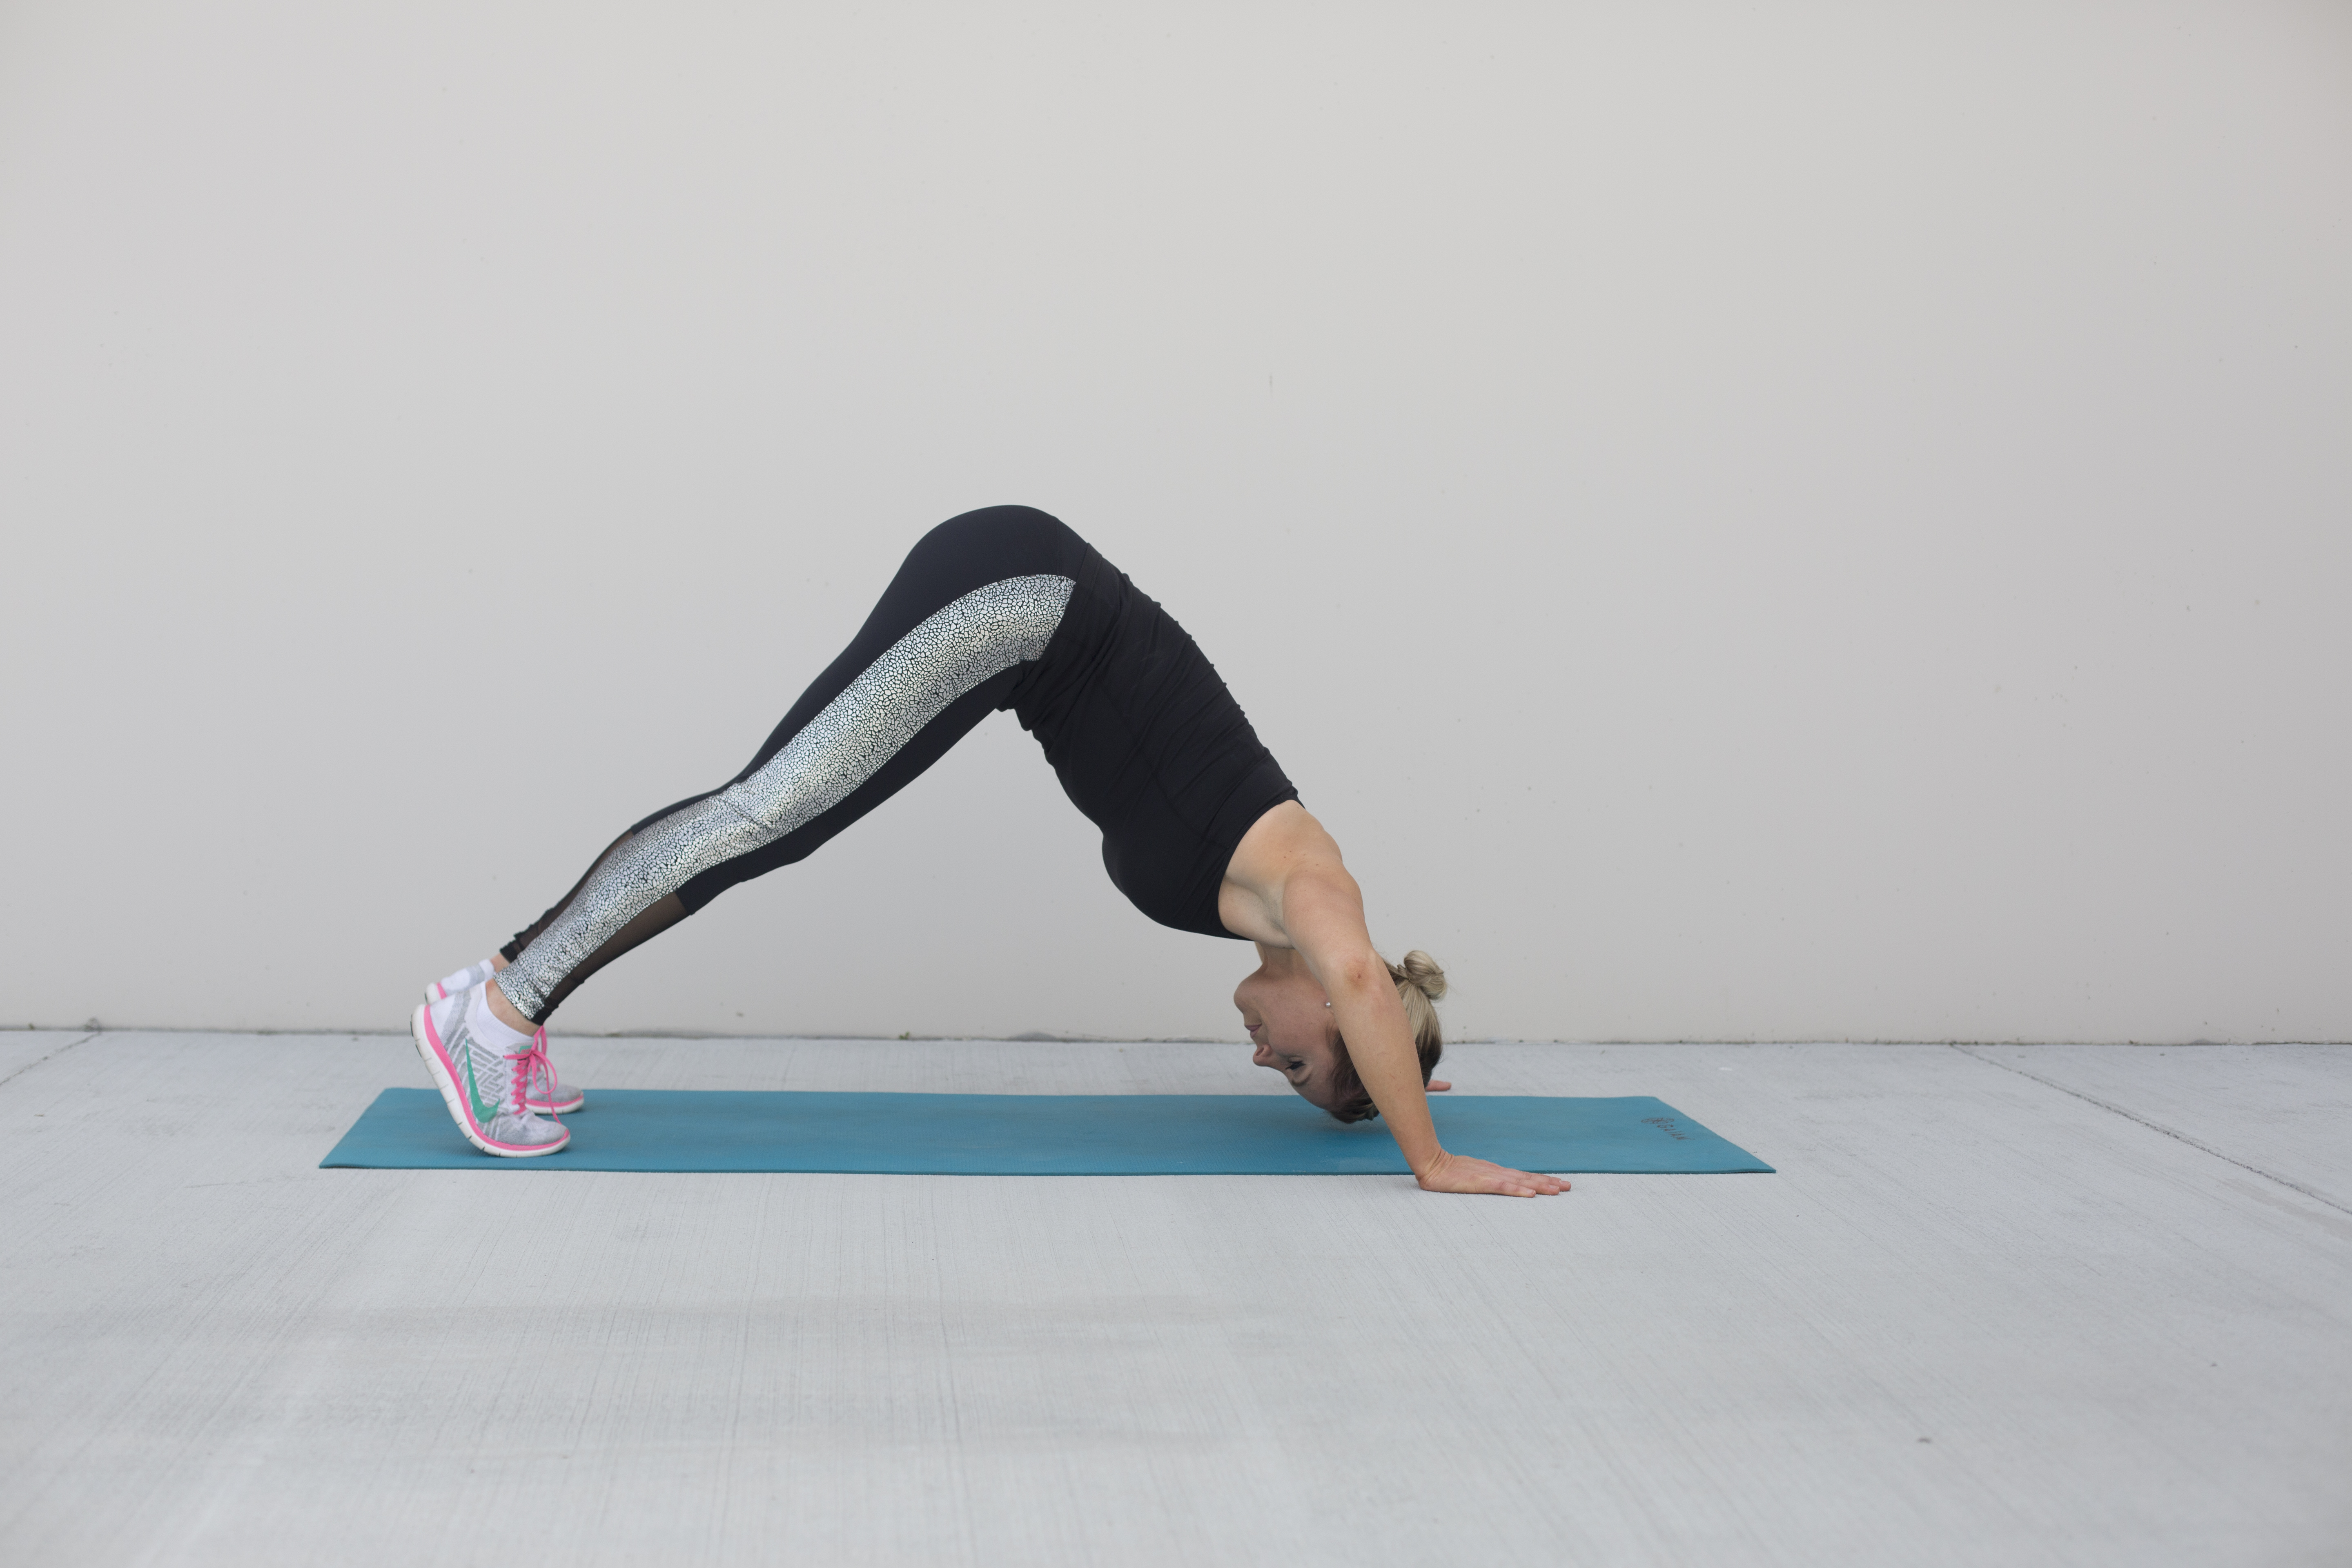 Pike Push-Up Shoulder Exercise Step 2